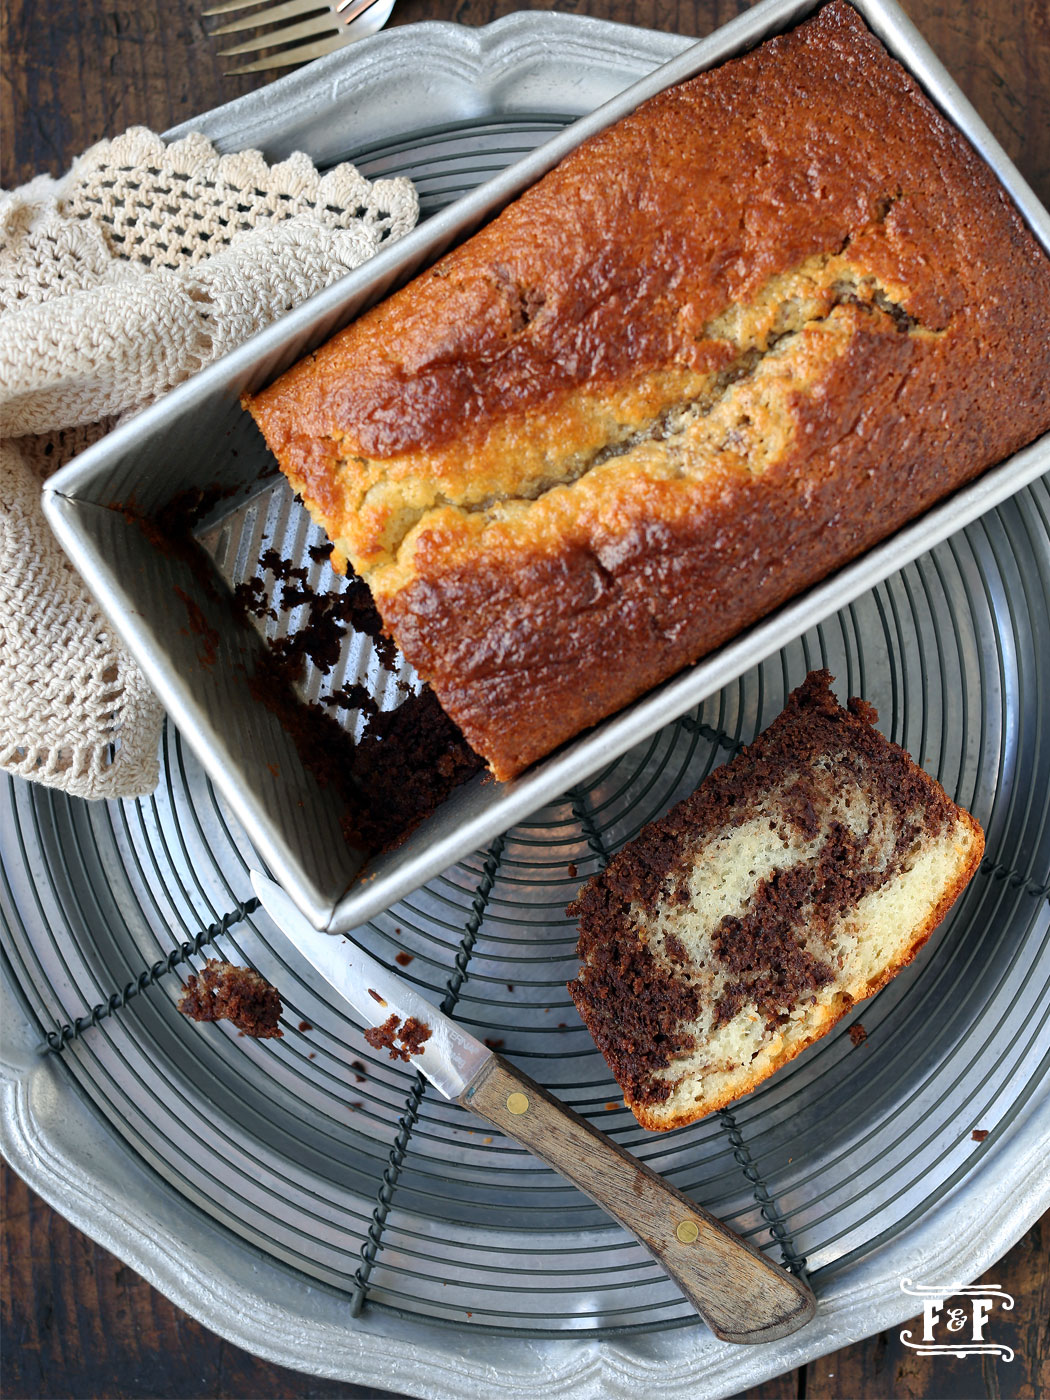 Lemon Chocolate EVOO Bread